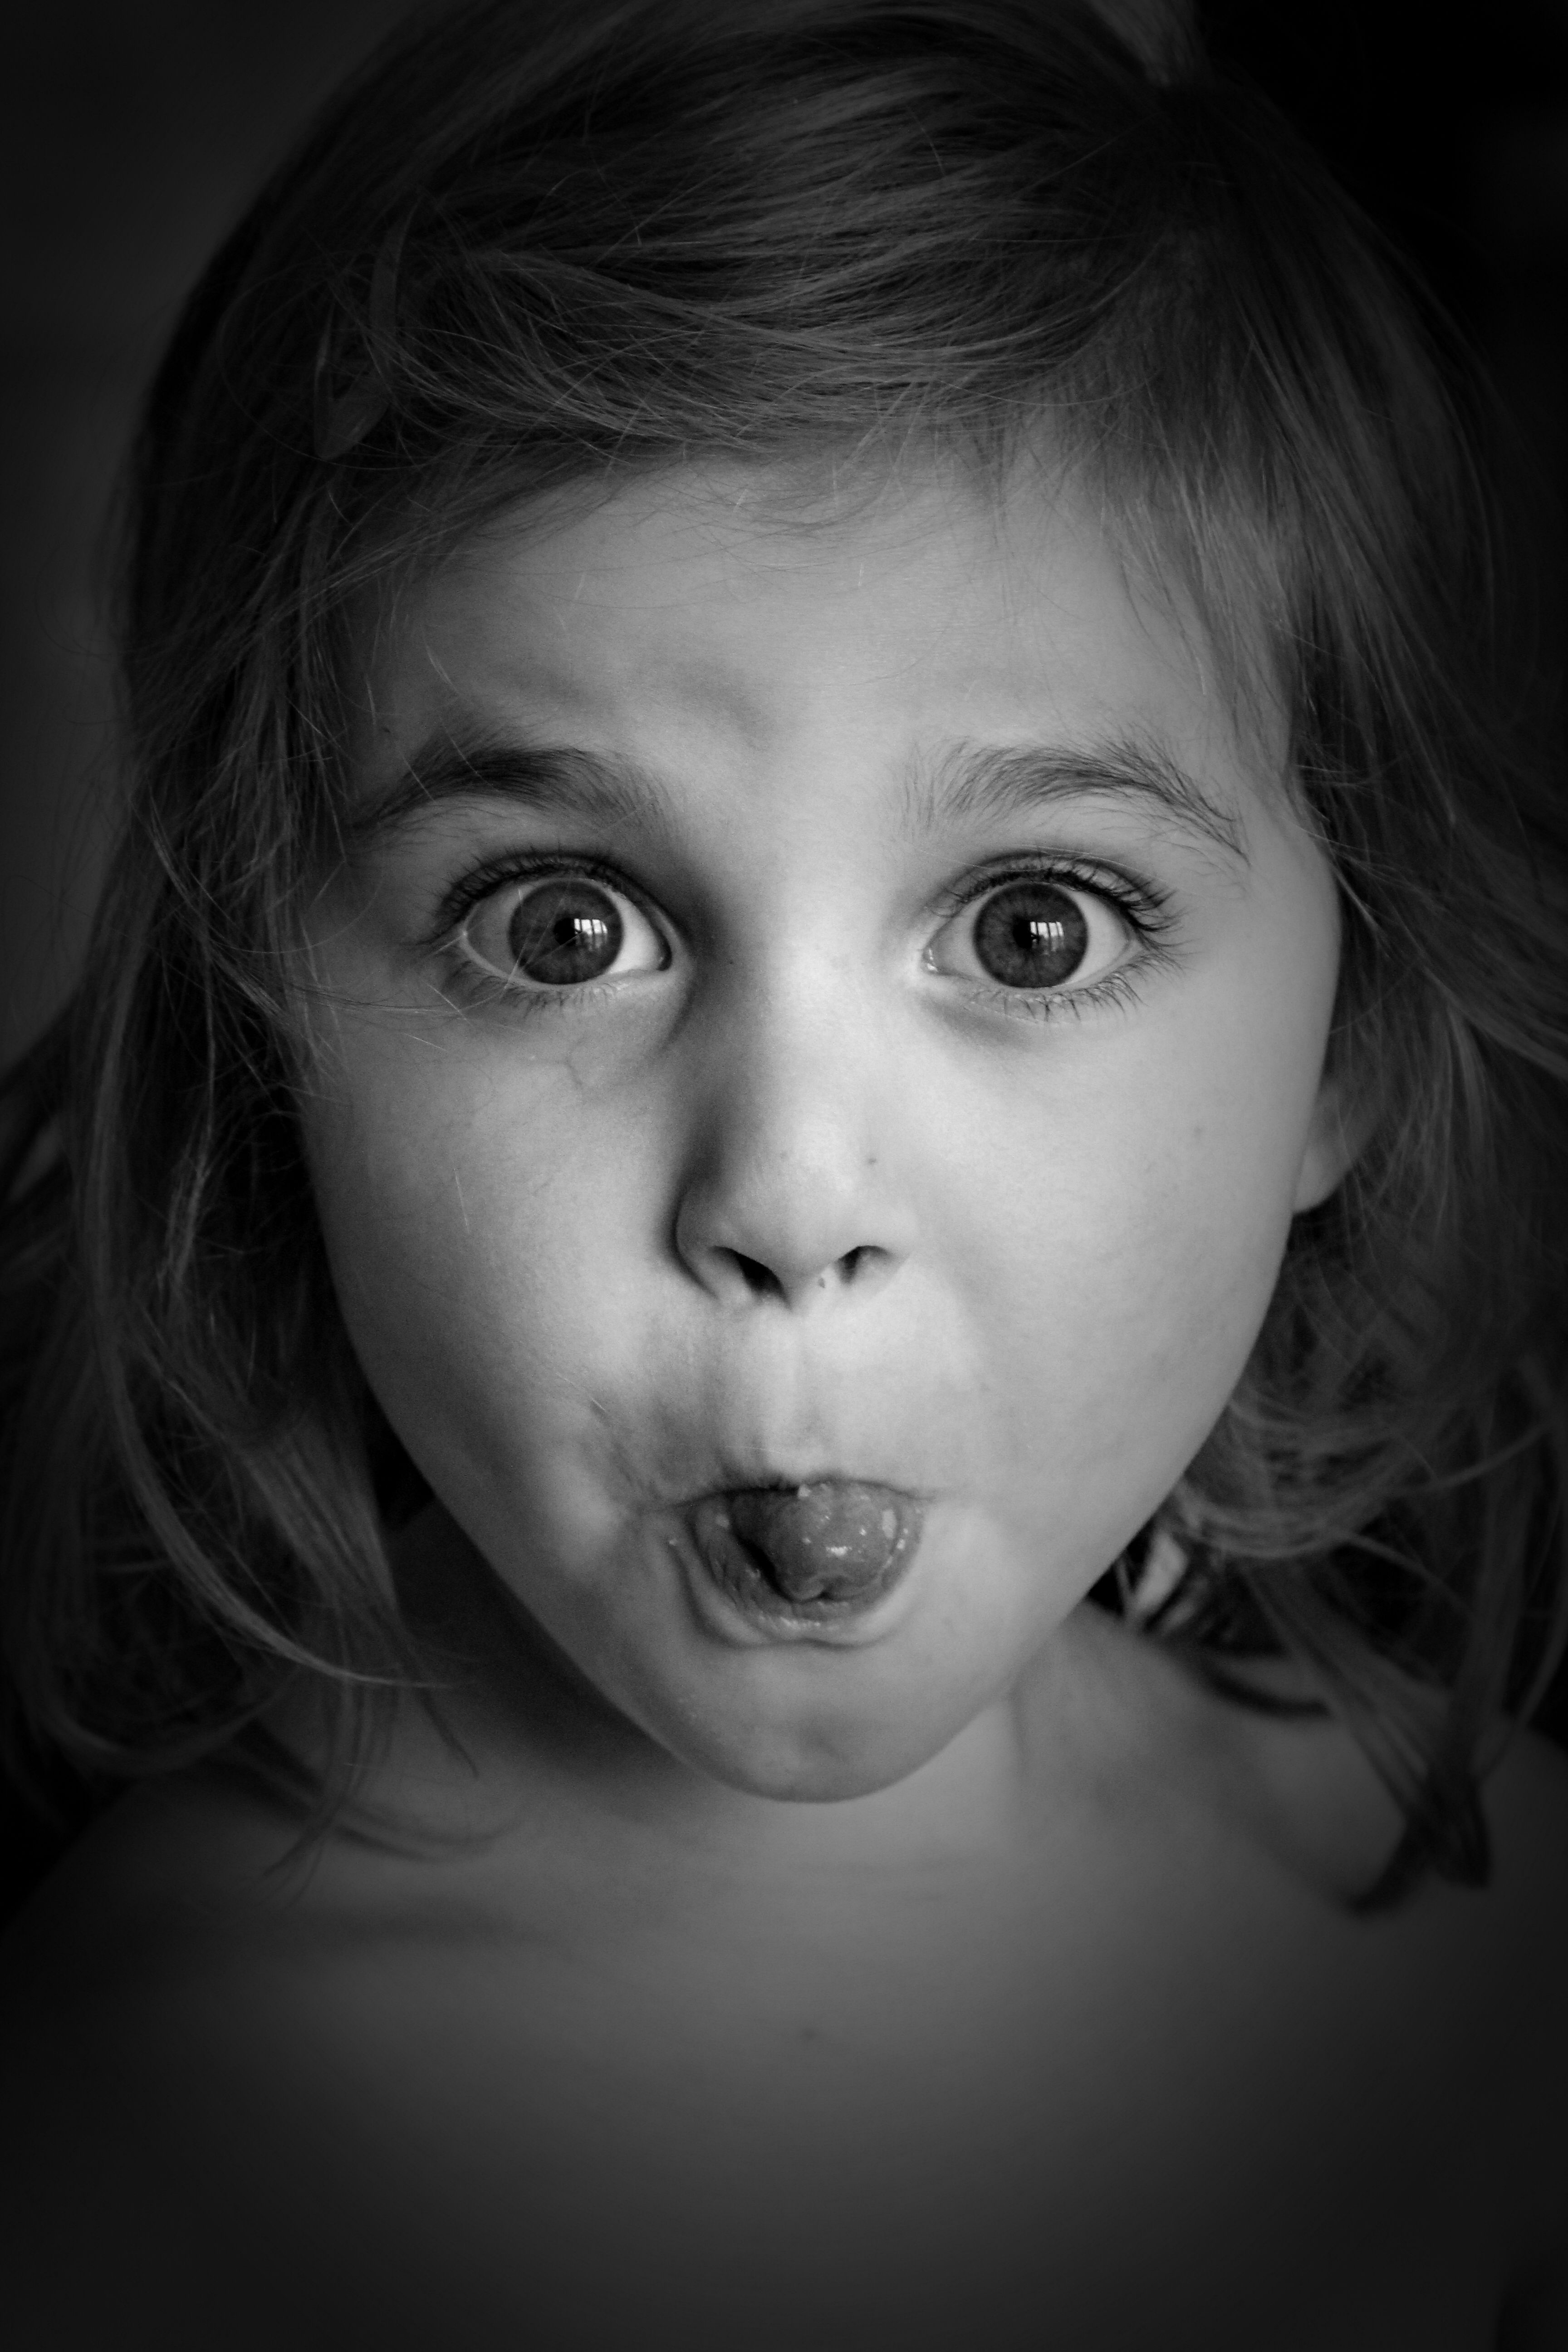 Black and white photograph of girl poking tongue out